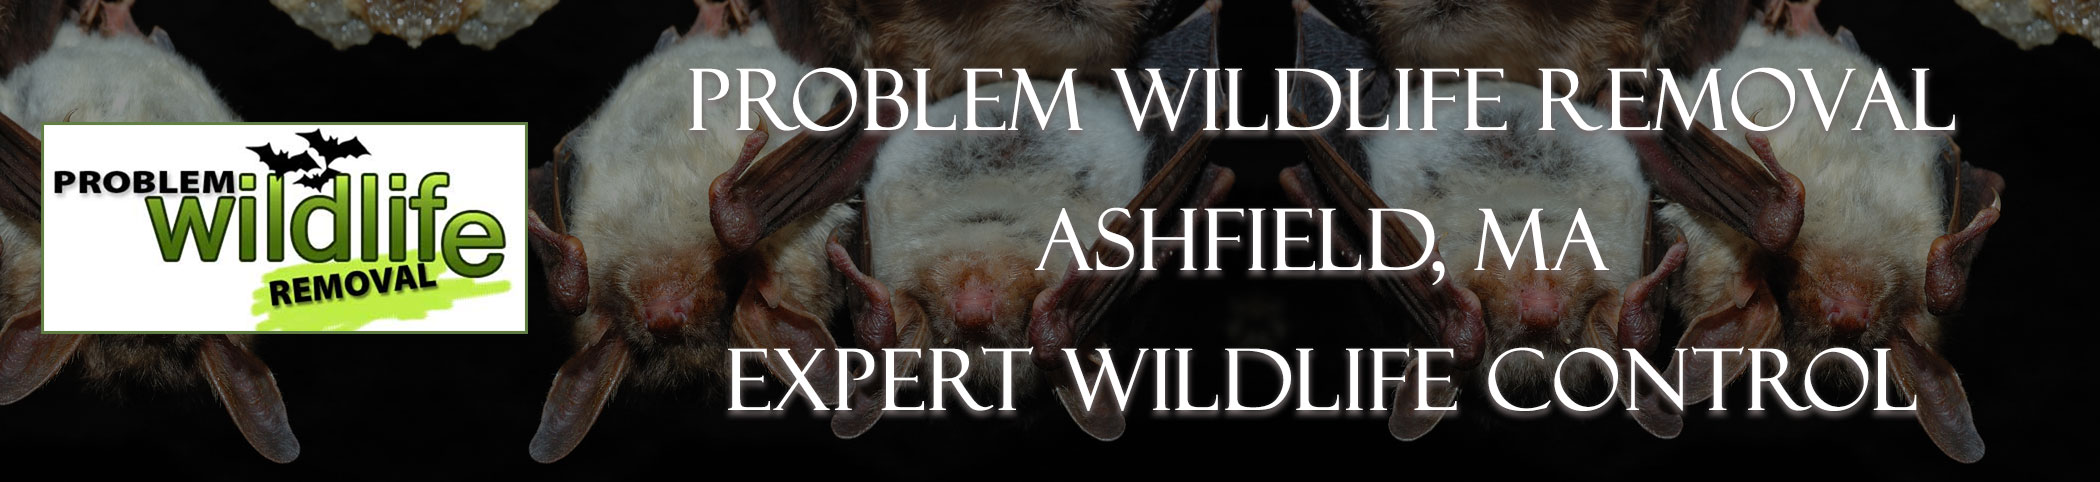 bat removal and bat exclusion by problem wildlife removal Ashfield ma